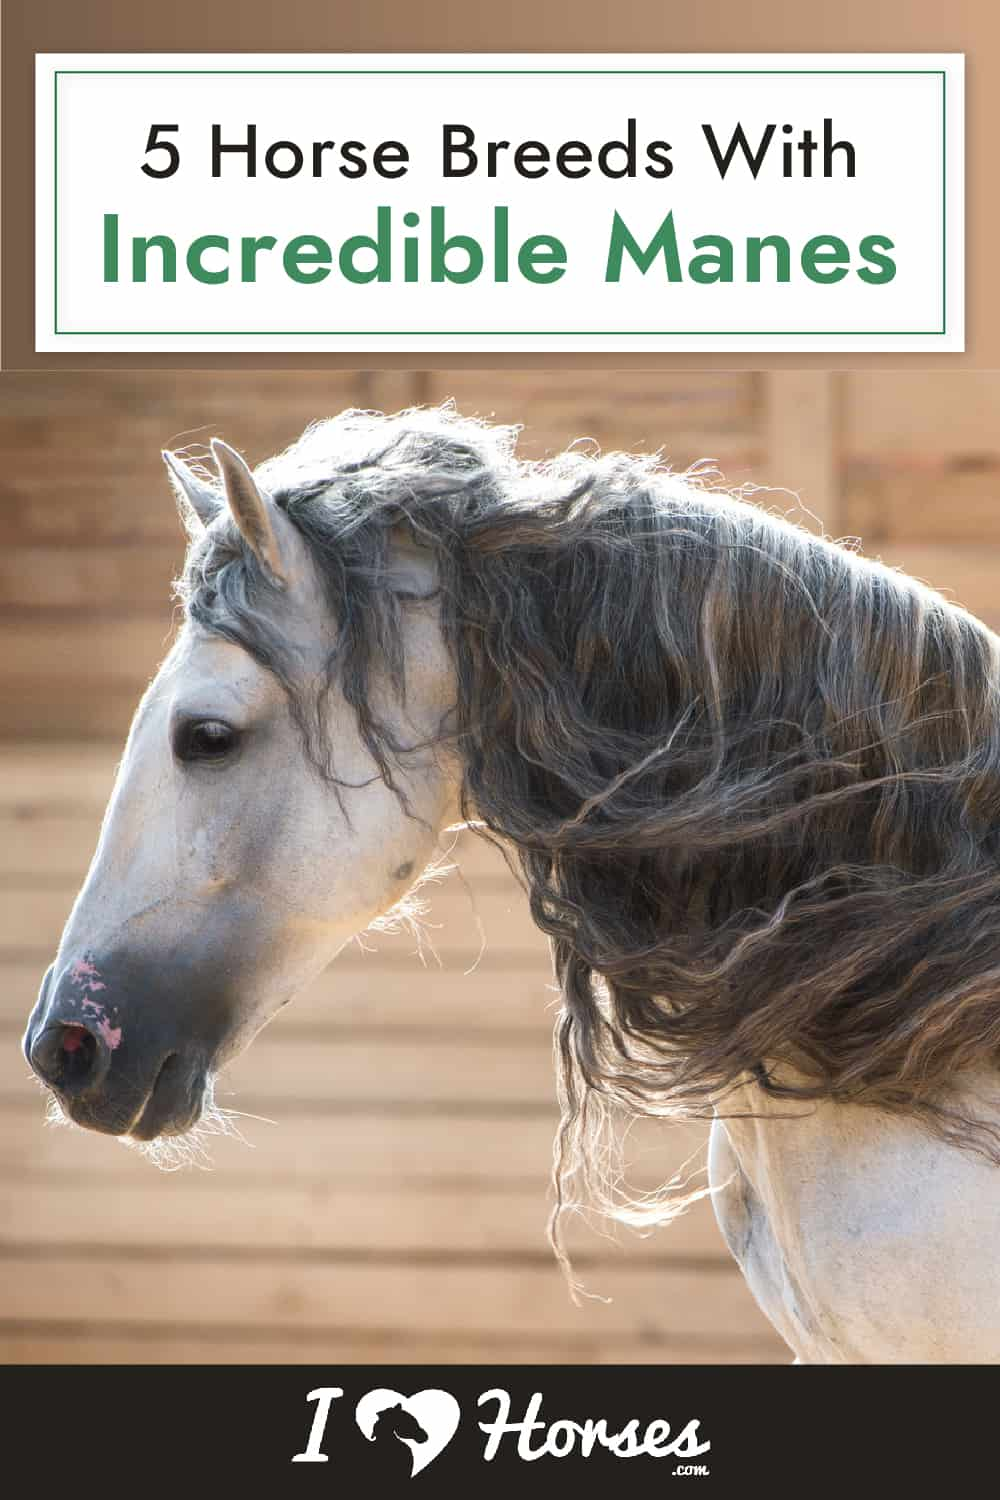 5 Horse Breeds With Incredible Manes